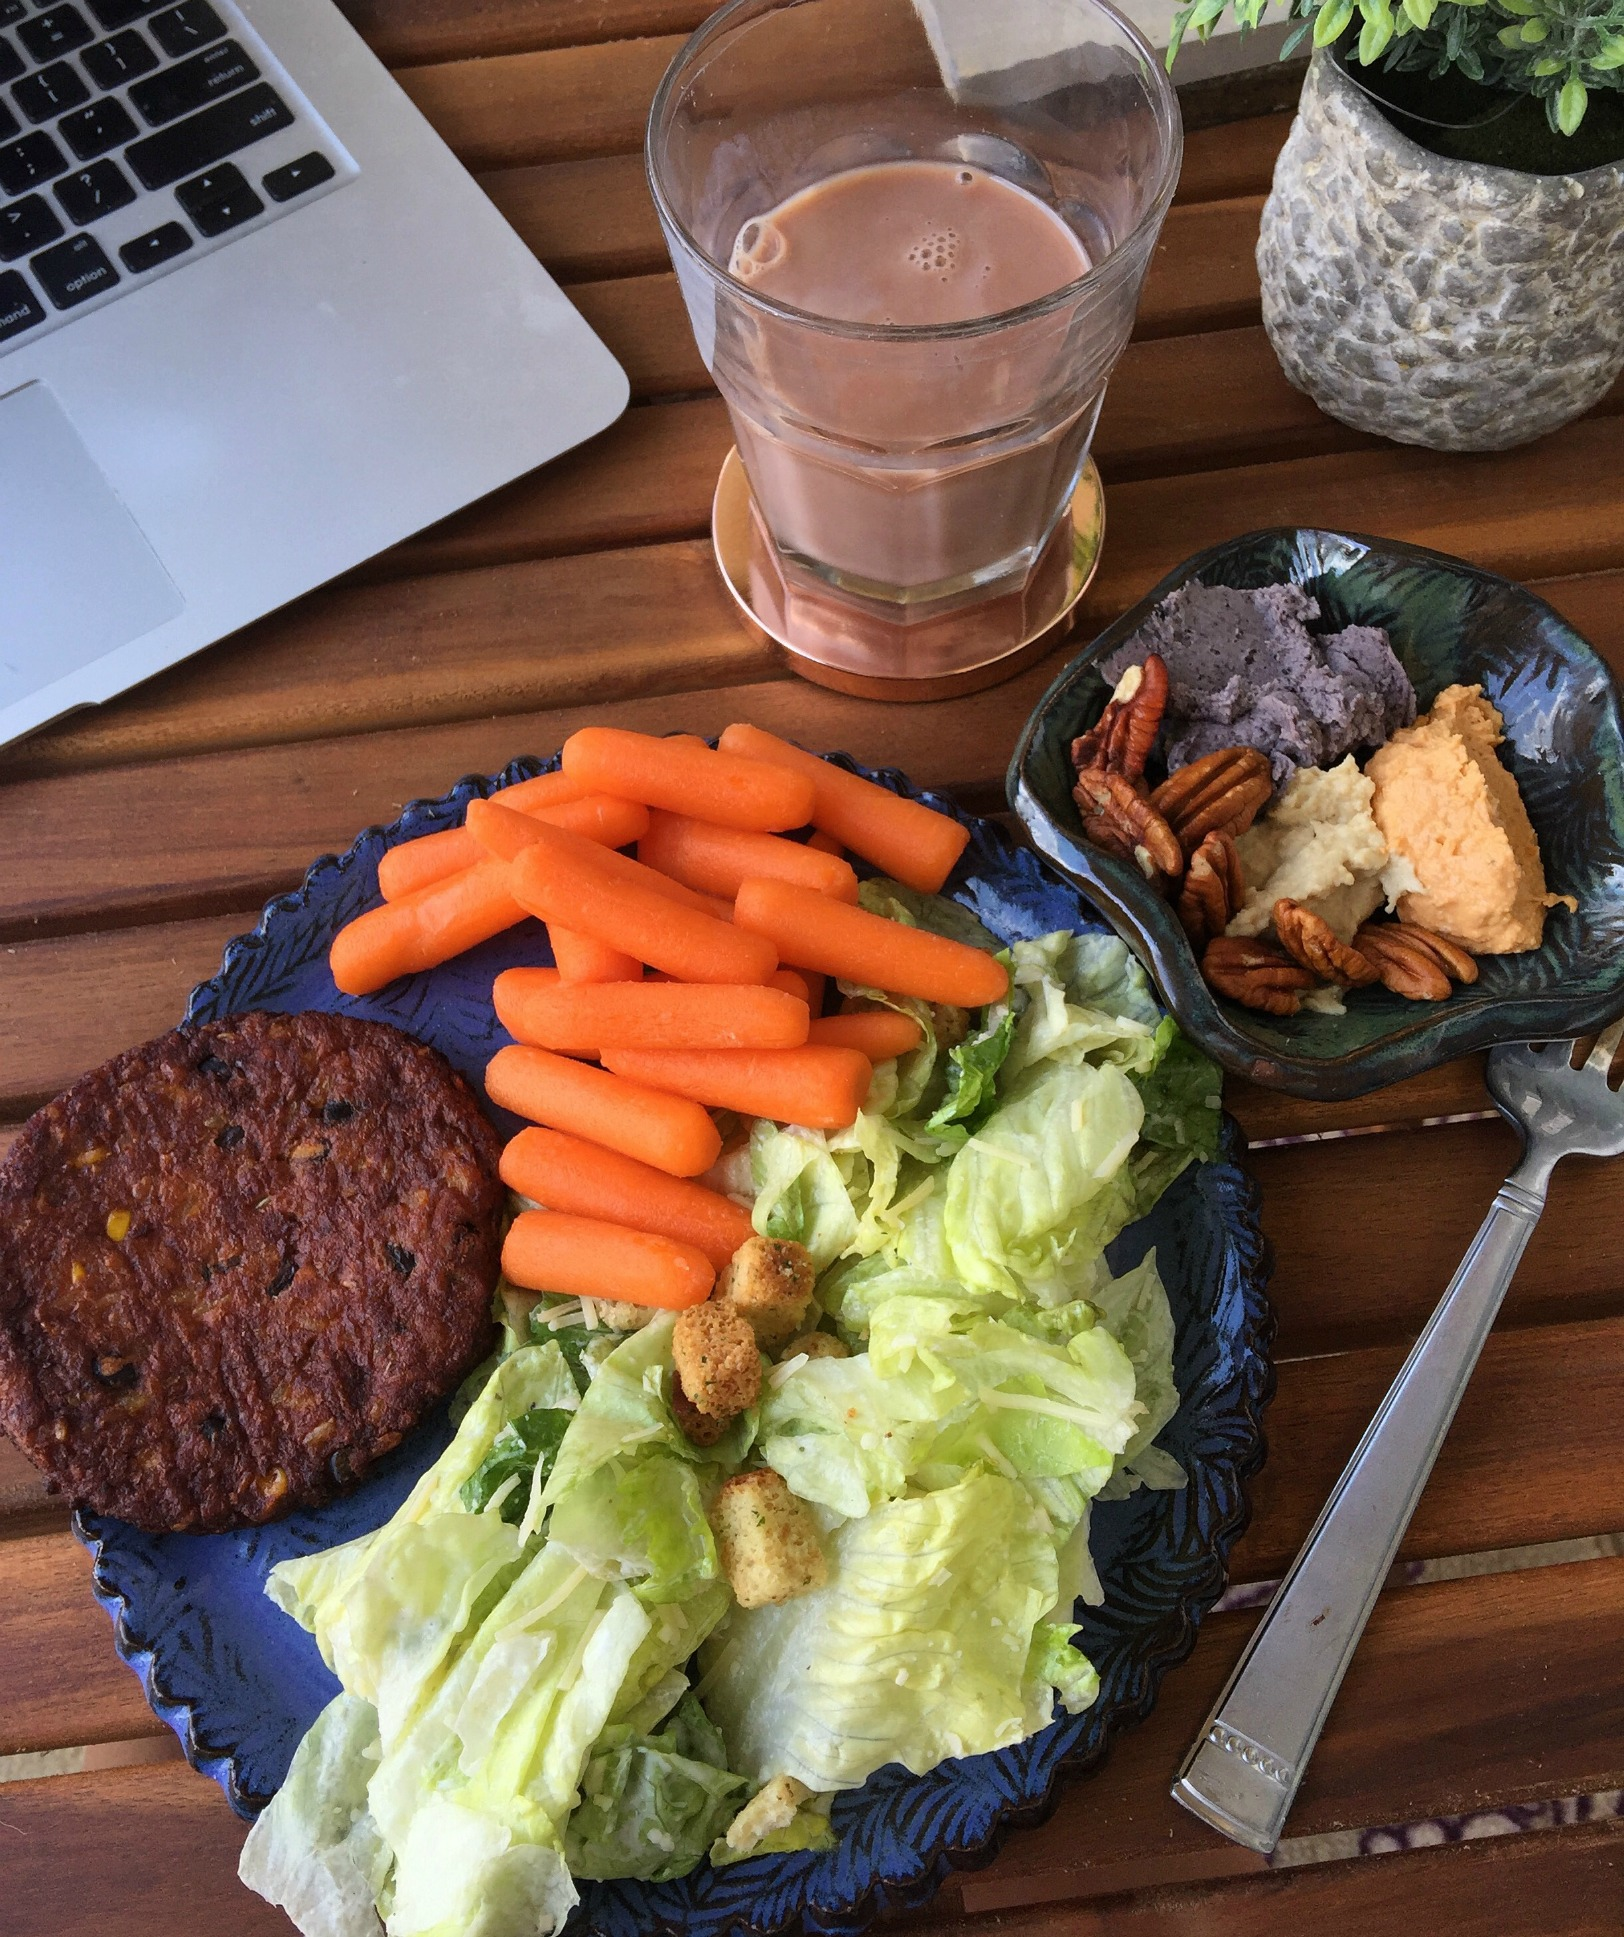 After my run, I made a side Caesar salad, spicy black bean burger and carrots and hummus. I also had a side of the boathouse farms protein juice.